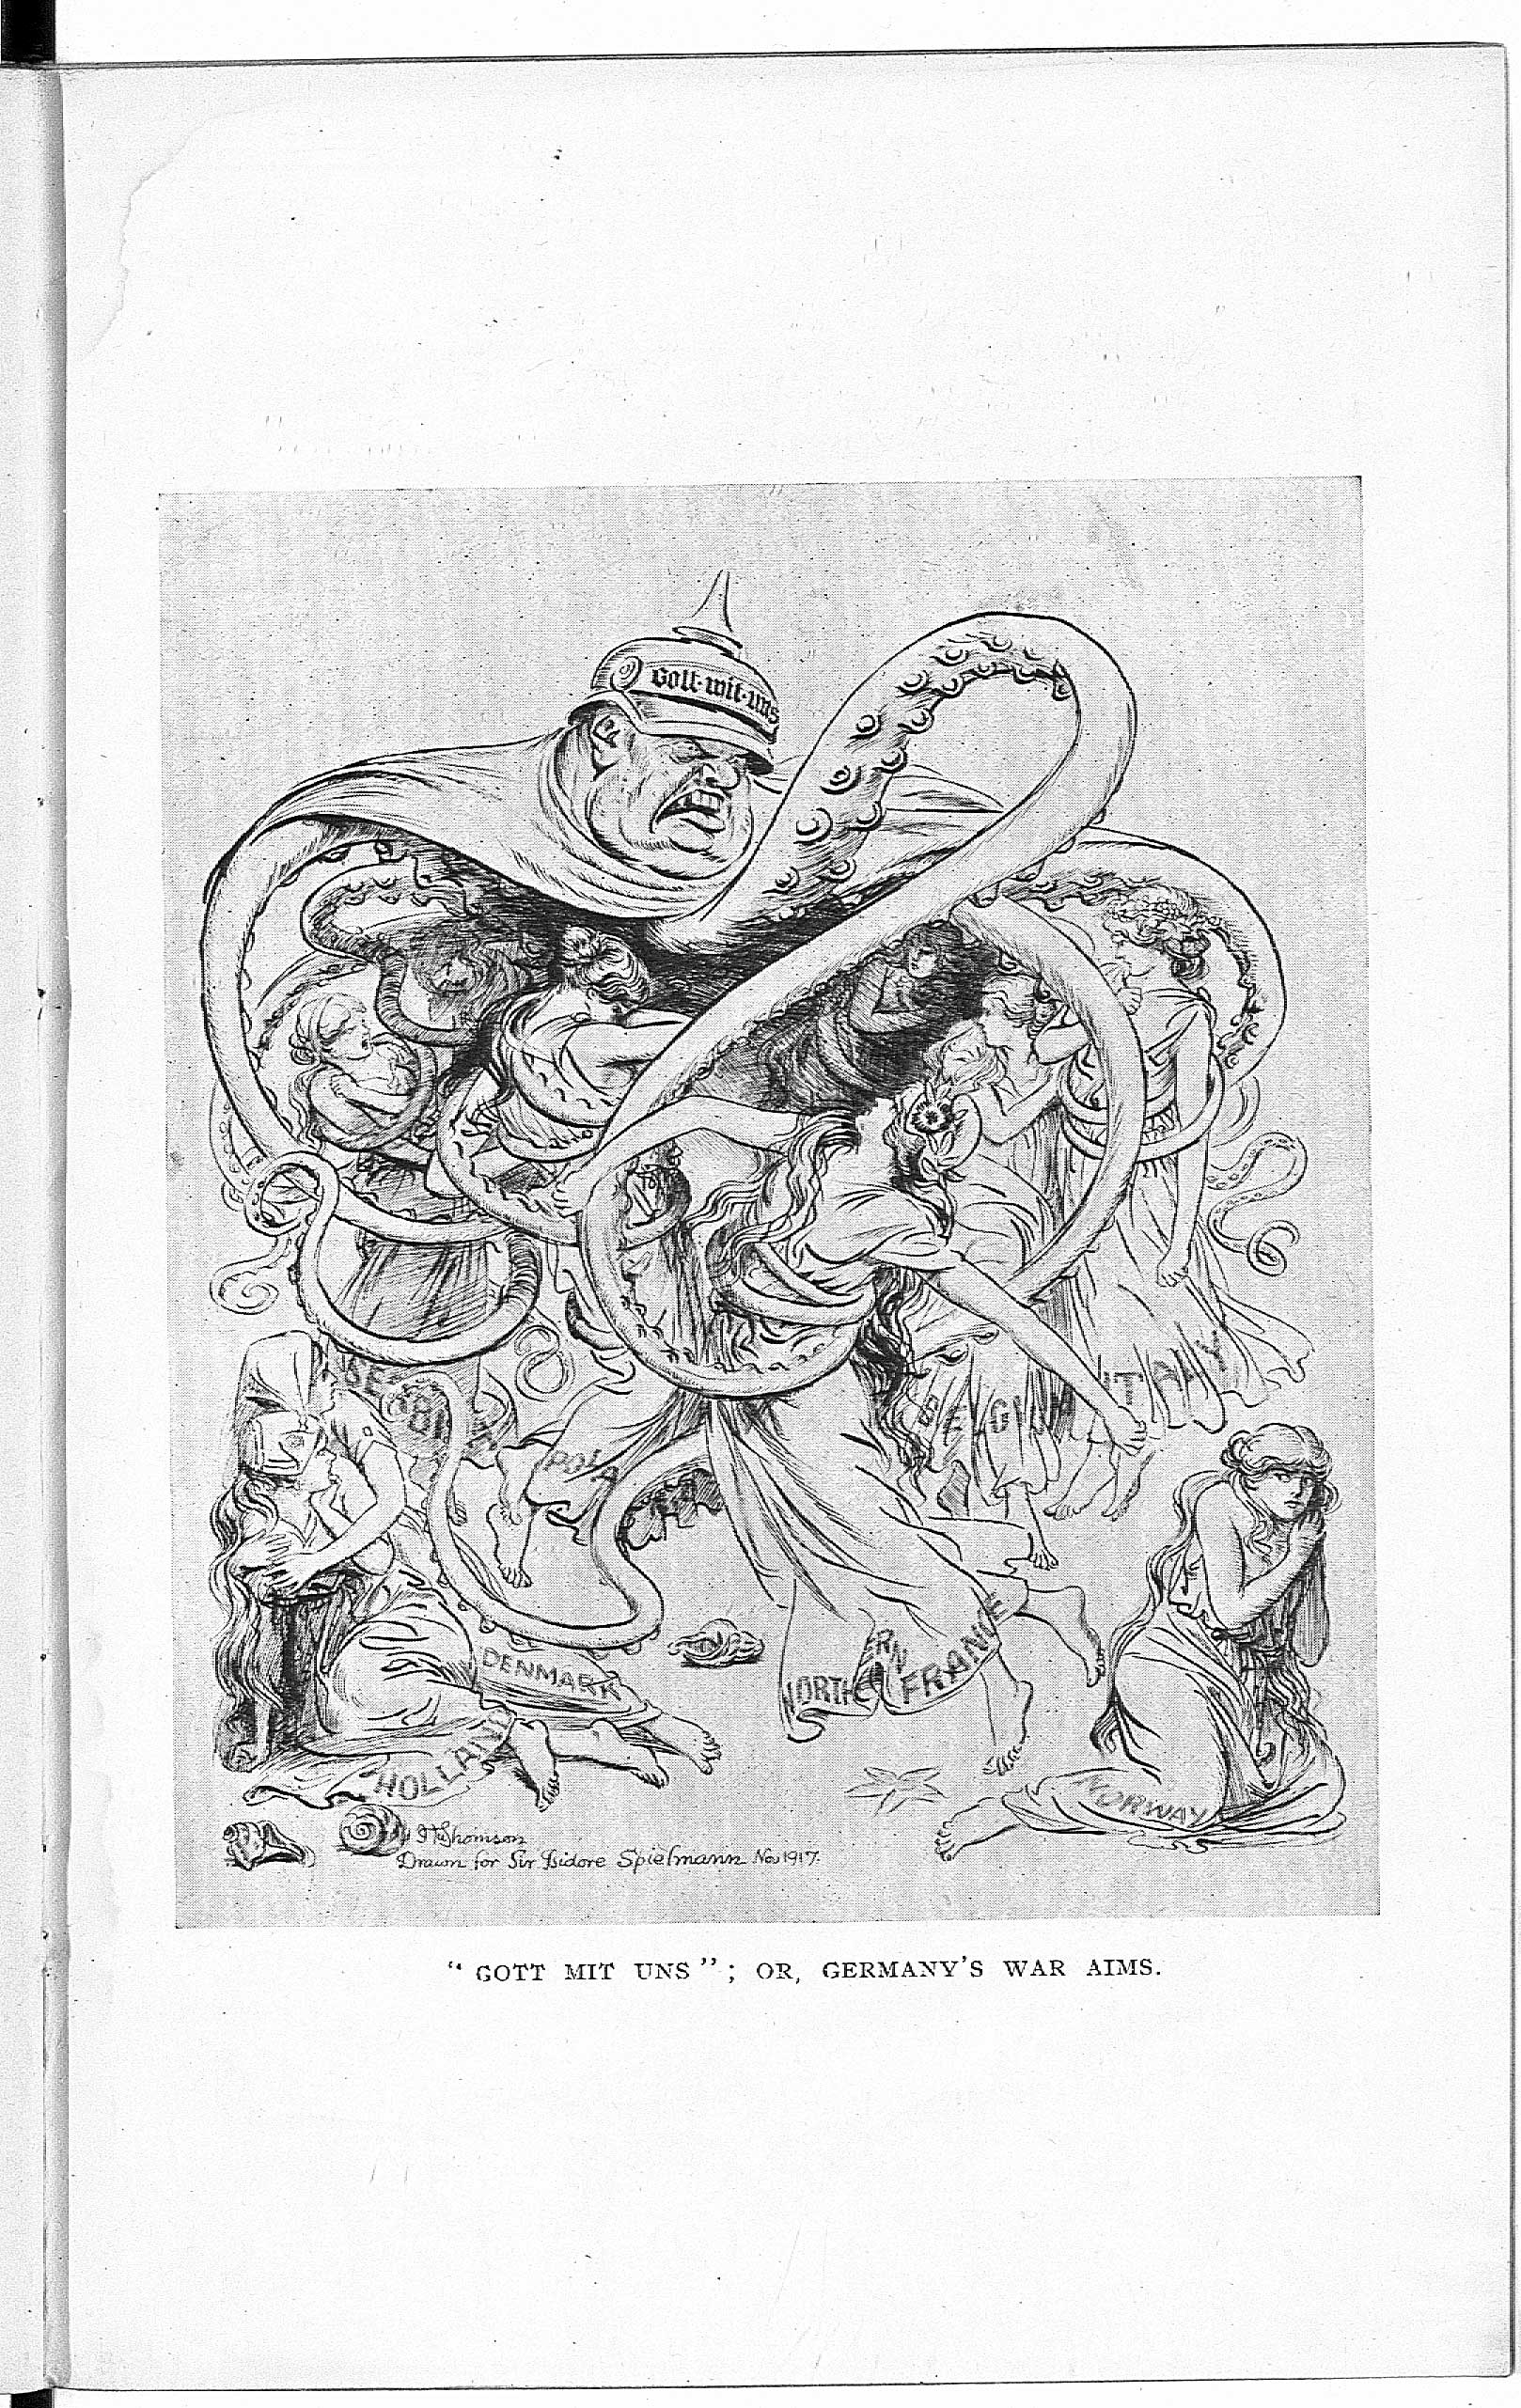 'Germany's Impending Doom': an open letter written by Sir Isidore Spielmann to the prominent German writer Maximilian Harden, with cartoons by Hugh Thompson, 1918.